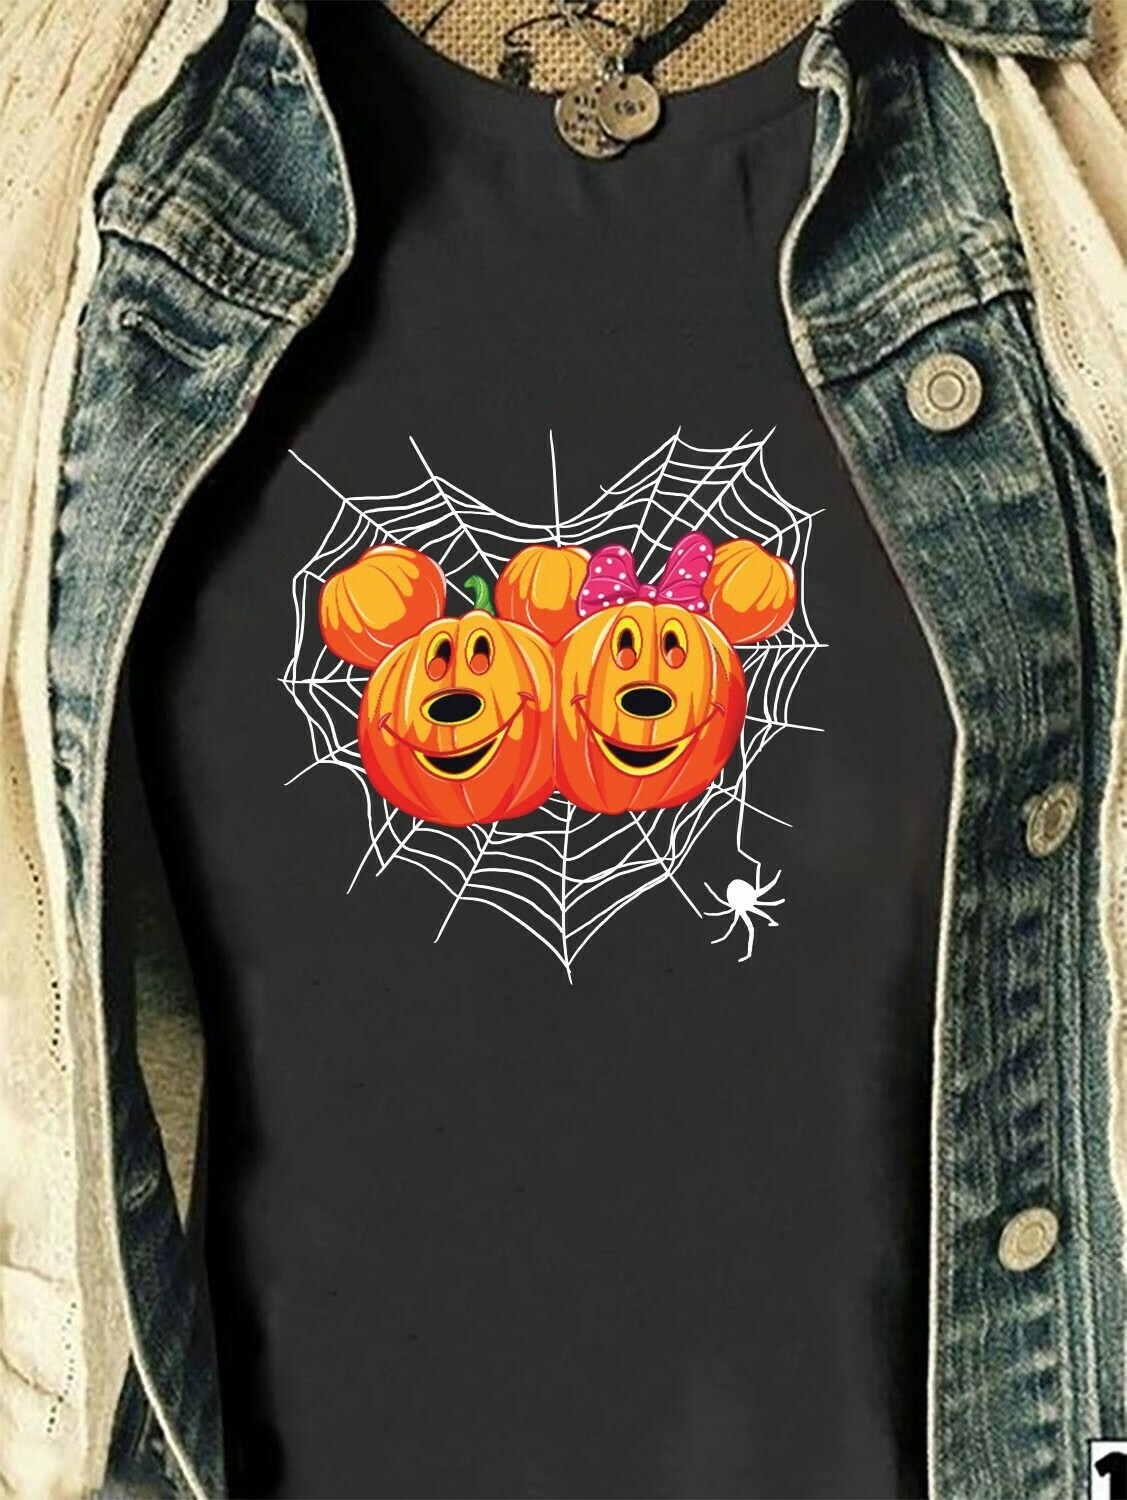 Pumpkins Disney Mickey Minnie Love Trick Or Treat Spider Not So Scary Halloween I'm going to Walt Disney Vacation Family Unisex T-Shirt Long Sleeve Sweatshirt Hoodie Jolly Family Gifts